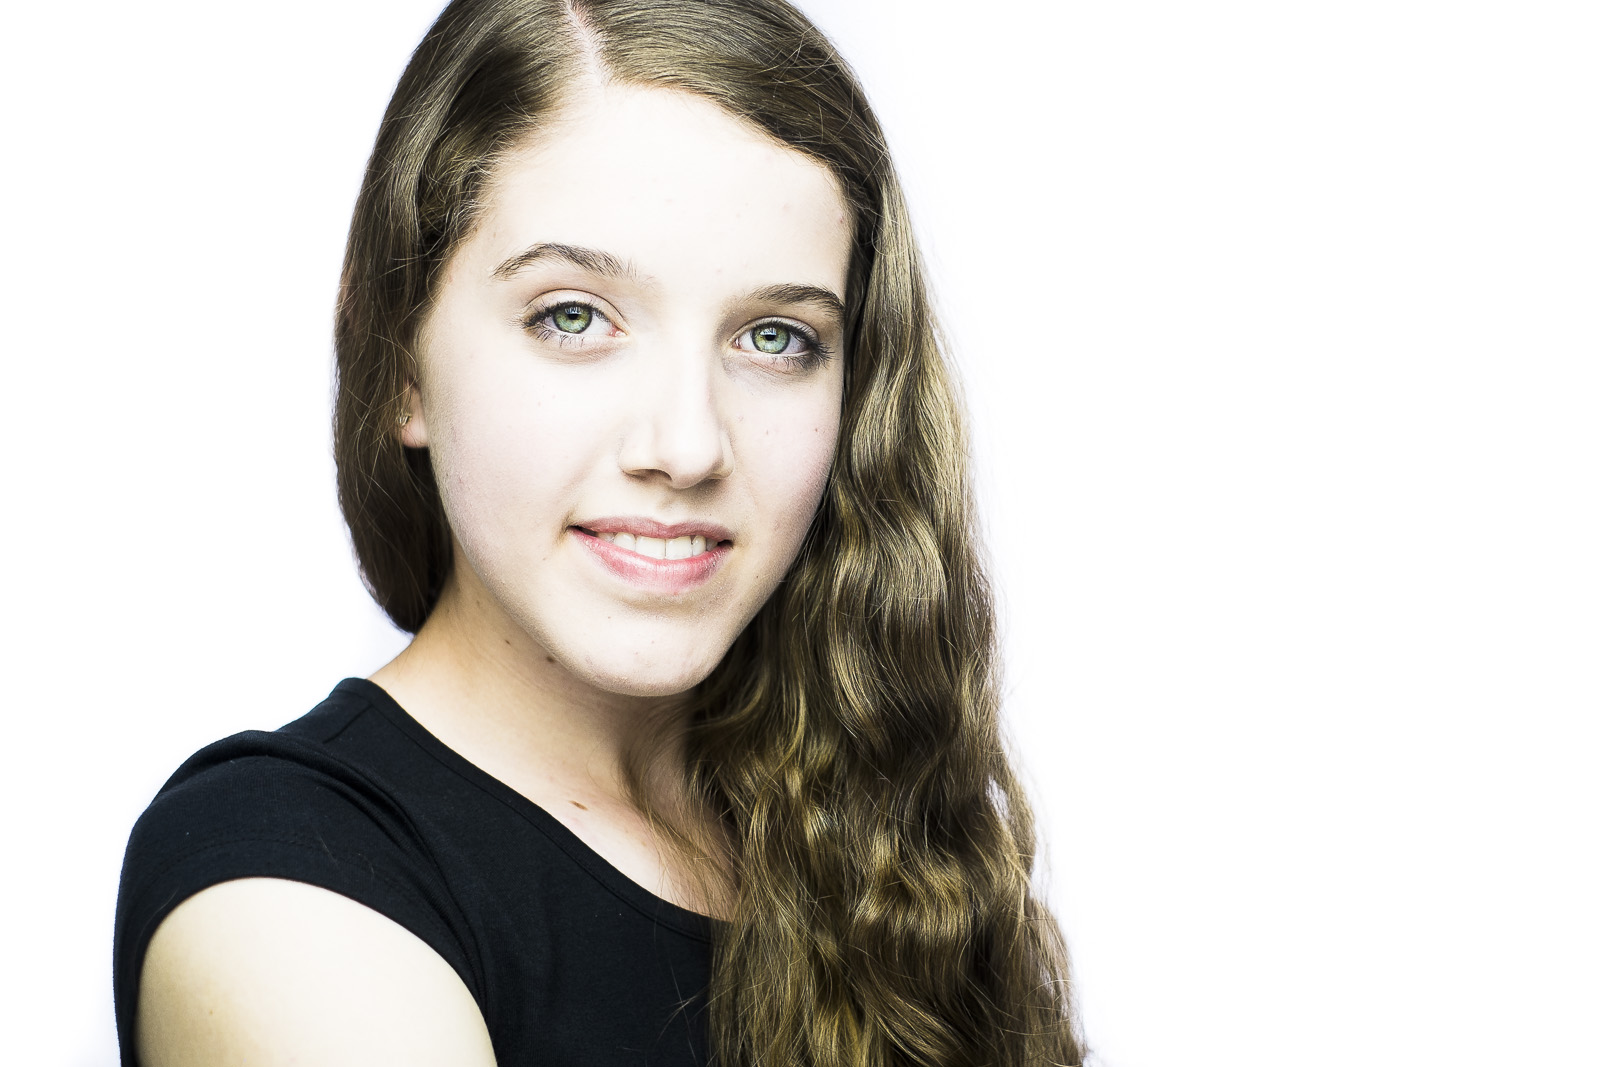 A professional headshot session for Hannah, a young dancer/actress looking for new portraits to use in her career by Andre Goosen for Boom Headshots in Adelaide.